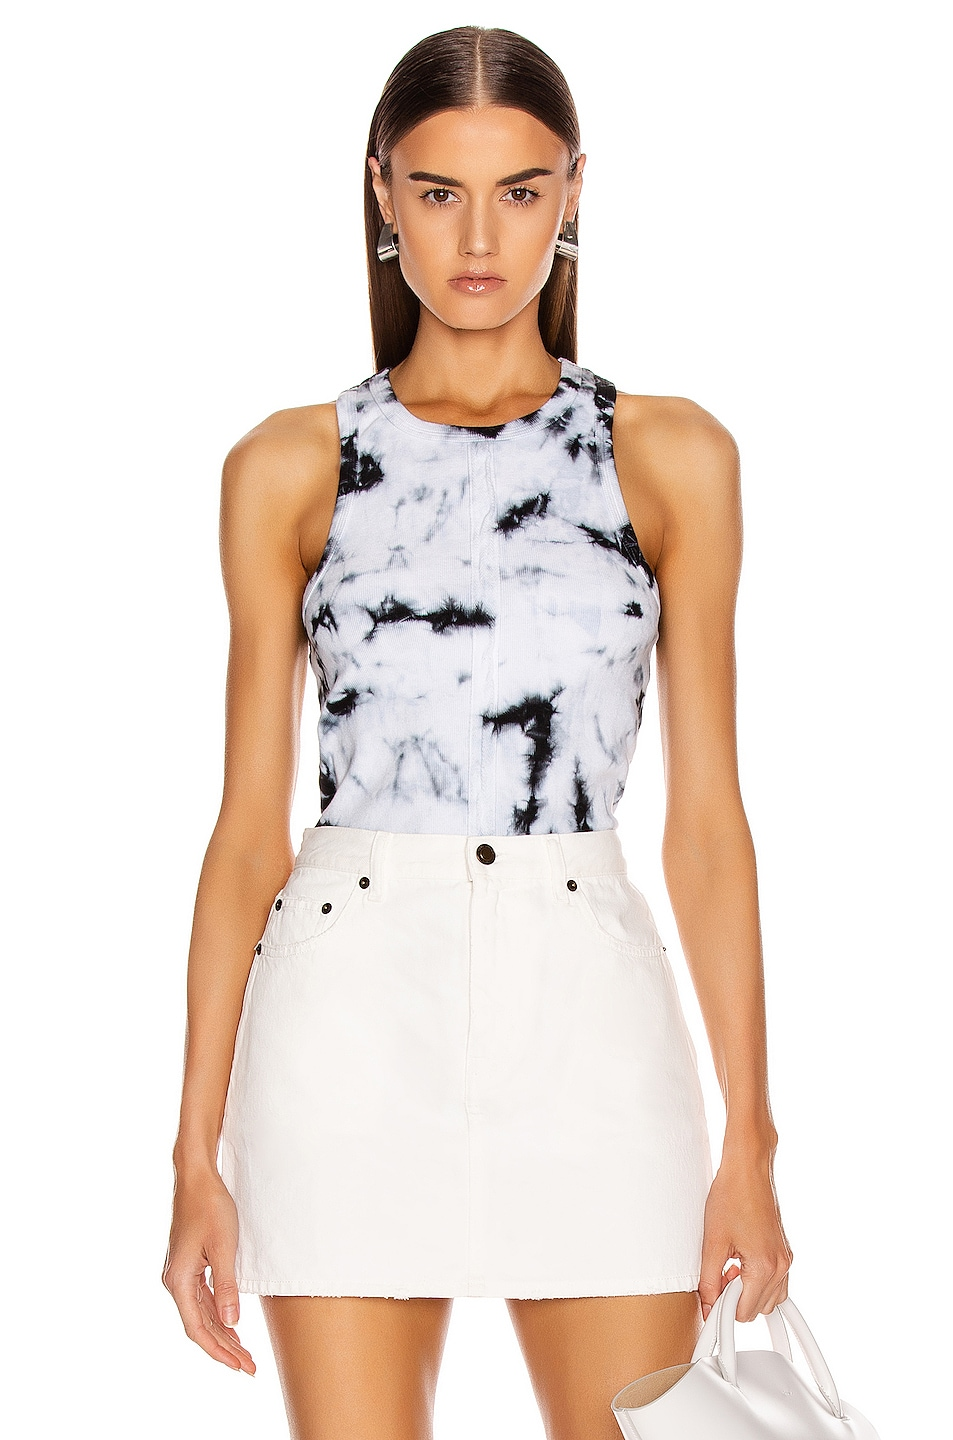 Image 1 of Proenza Schouler PSWL Tie Dye Rib Tank Top in White & Black Tie Dye